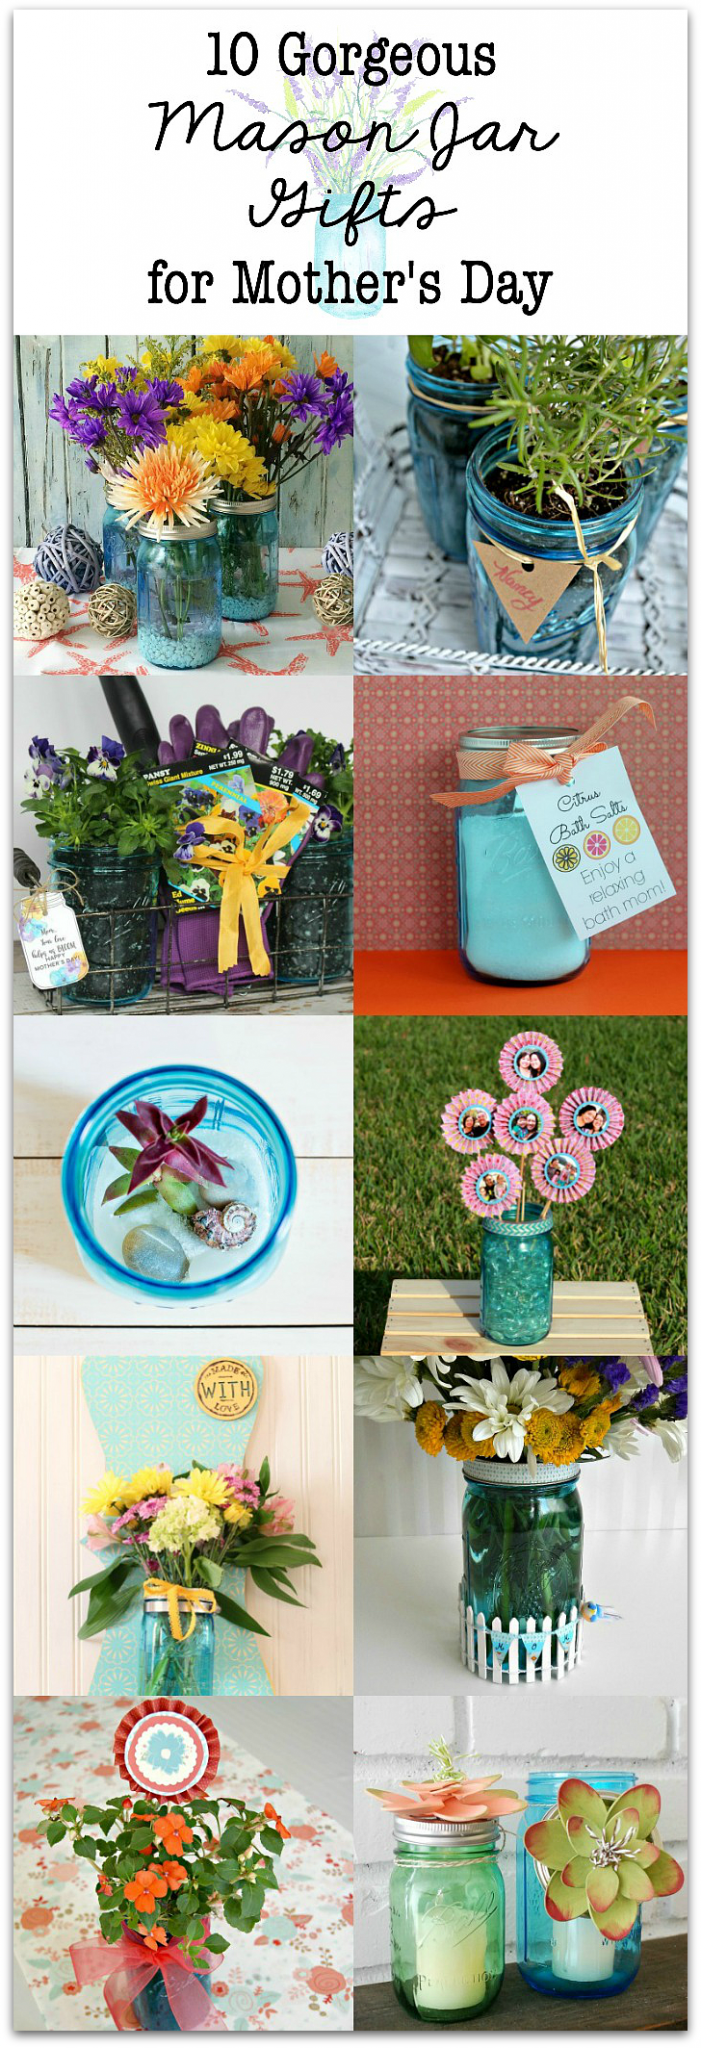 10 Mother's Day gift ideas in a jar! Great mason jar ideas for mom!